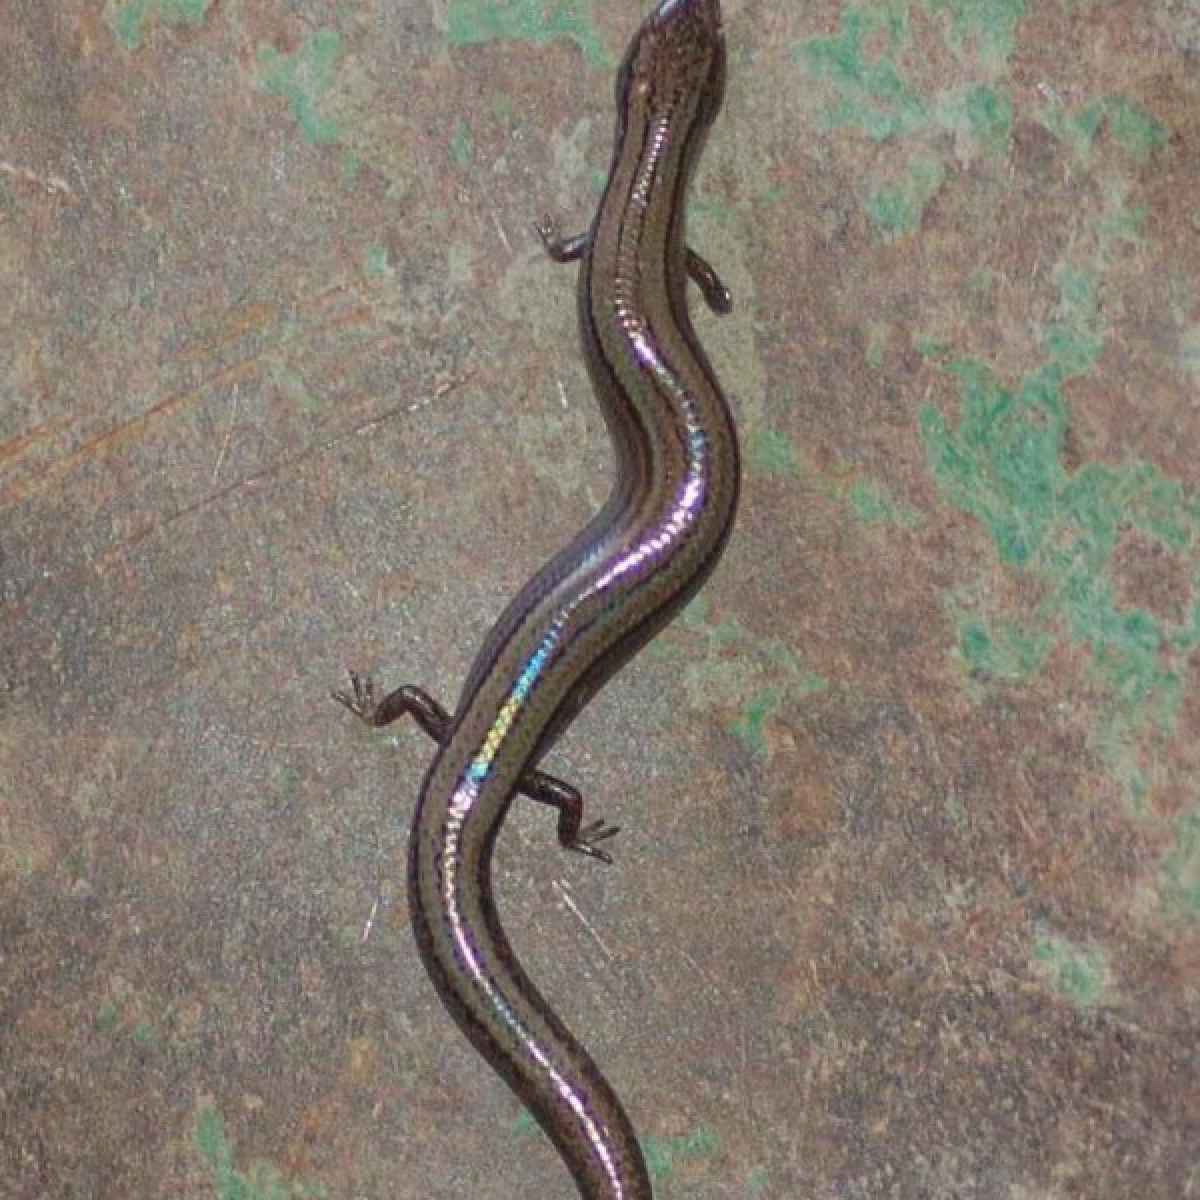 Three-toed skink